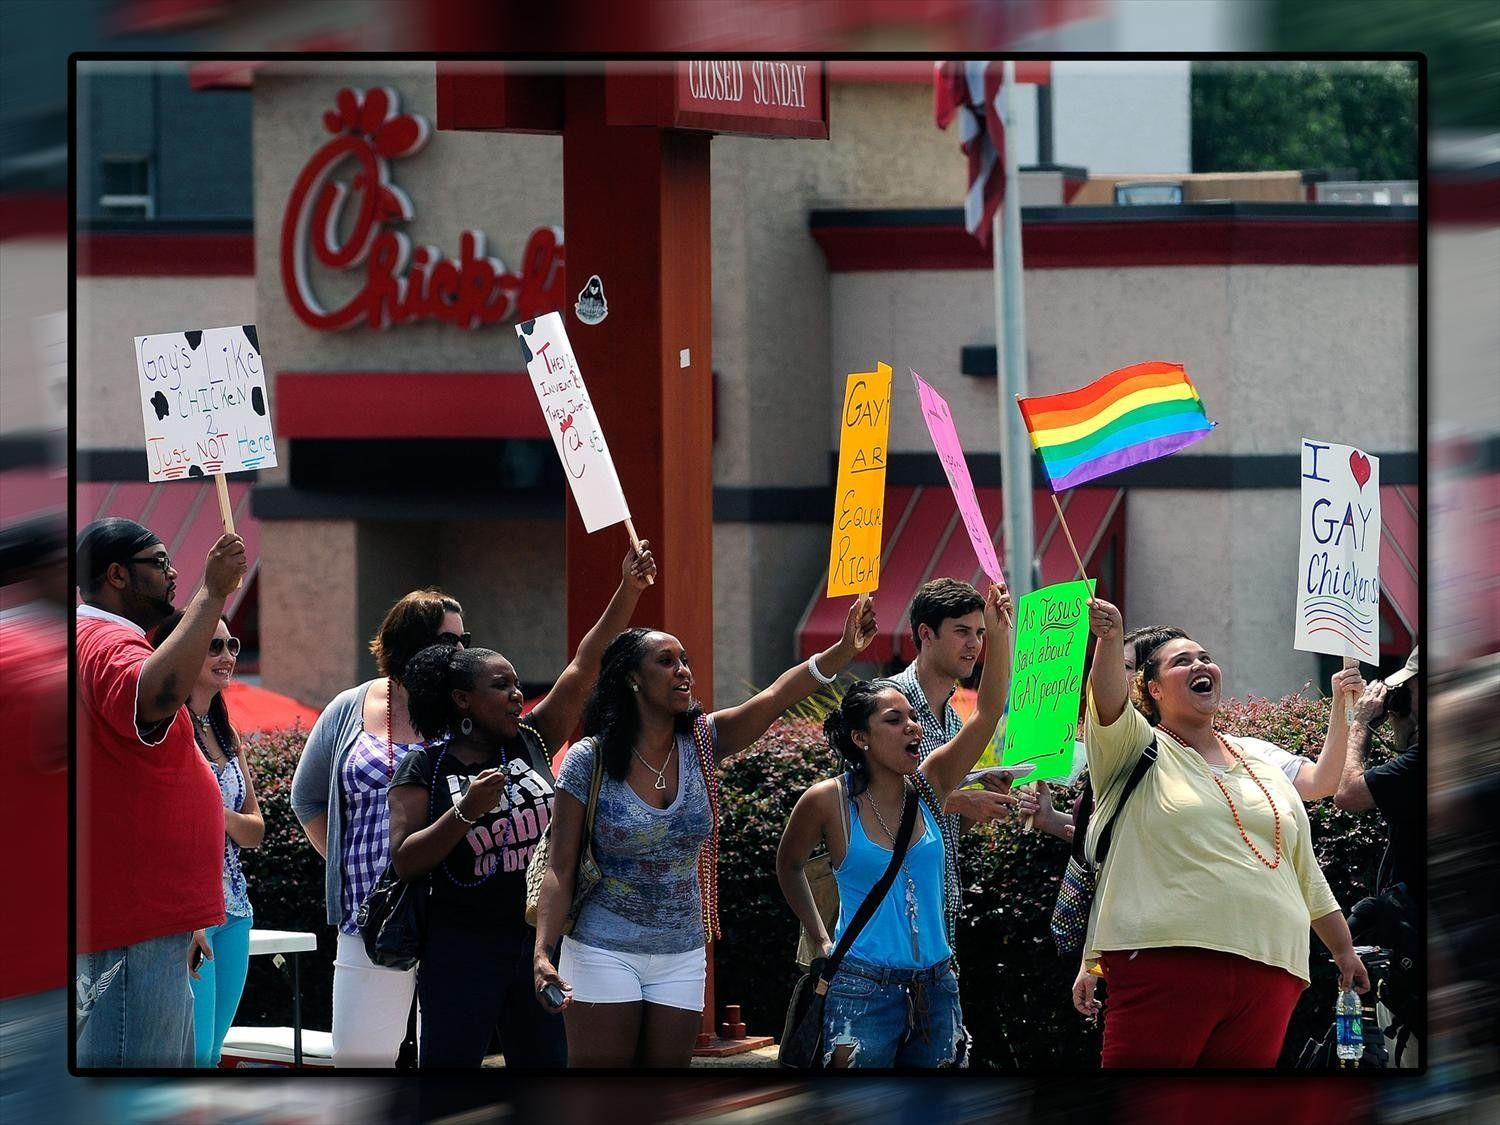 Gay rights activists holding signs during protest outside Chick-fil-a restaurant, Decatur, Georgia, on texture, partial graphic